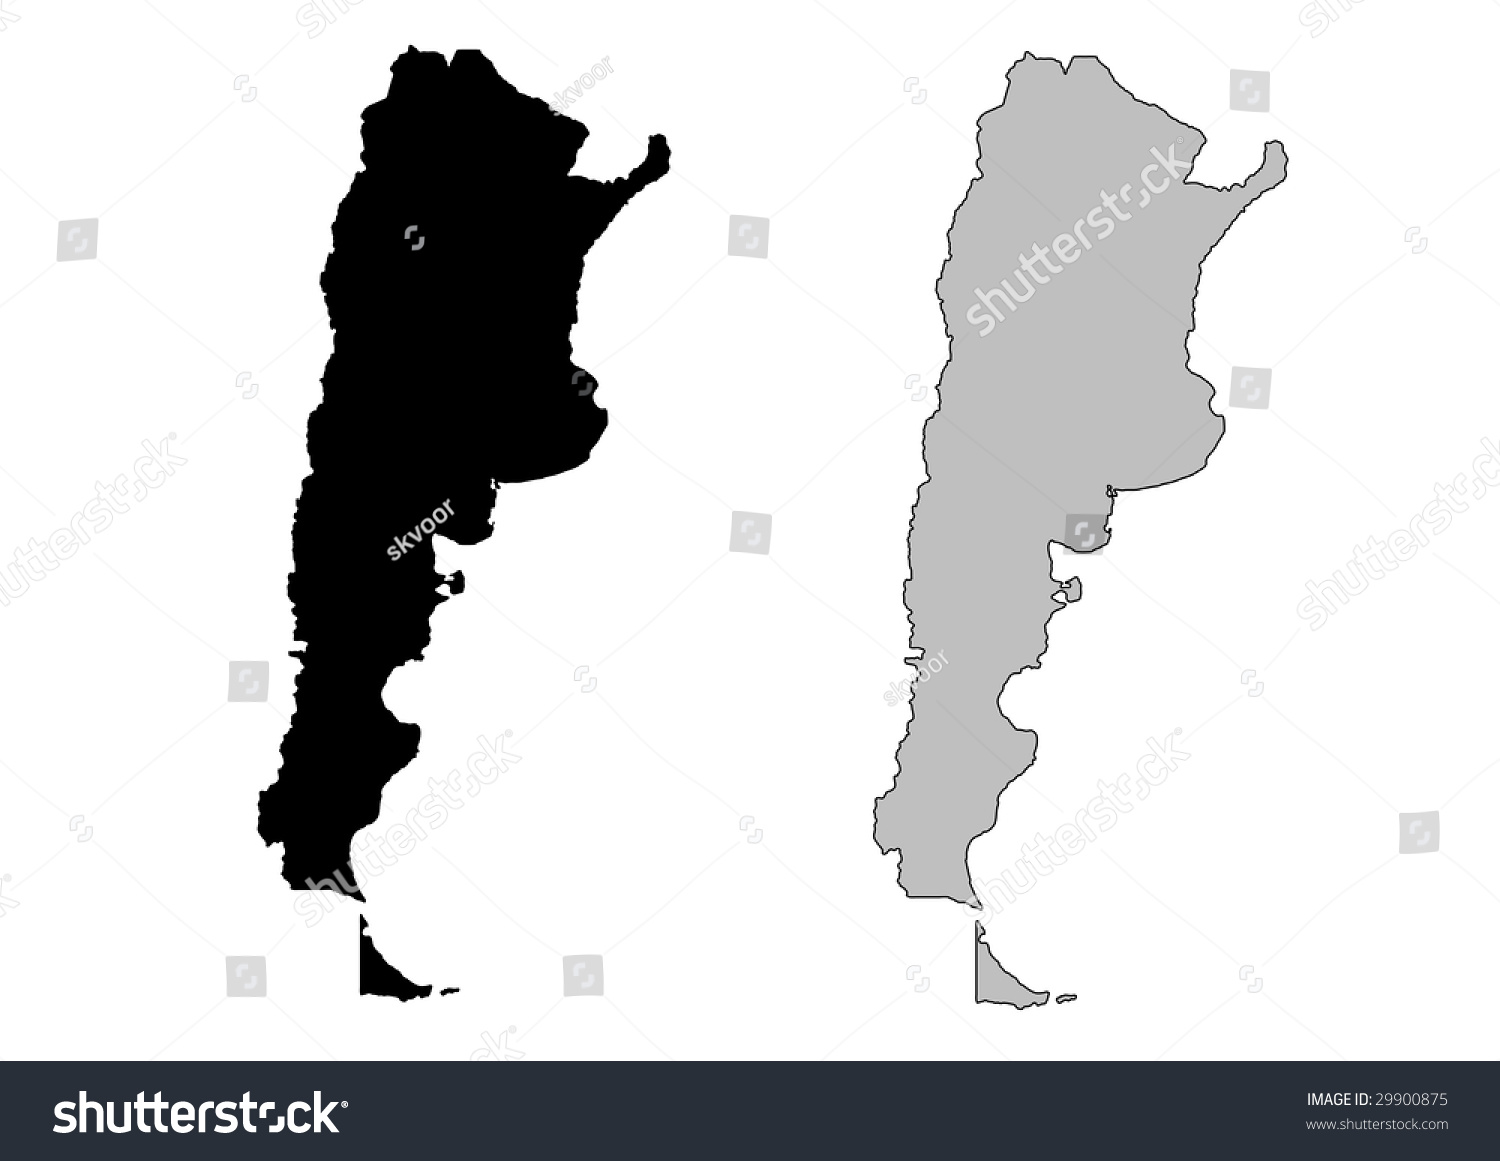 Royaltyfree Argentina Map Black And White Stock - Argentina map black and white